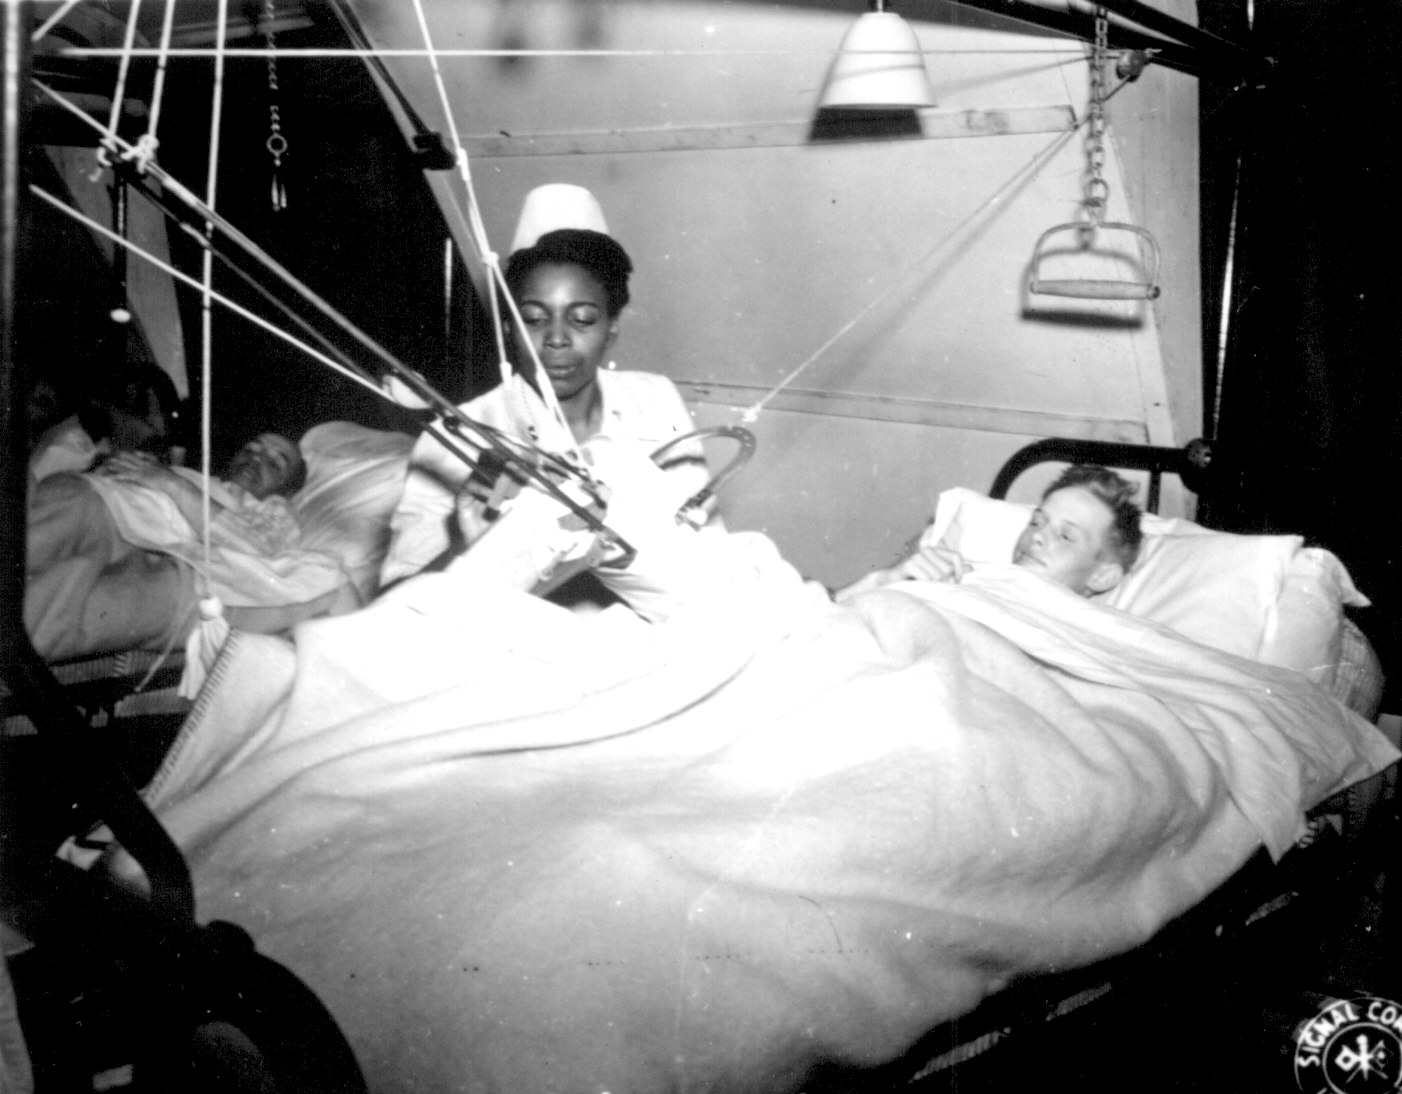 Army Nurse Tends to POW Patient in Military Hospital